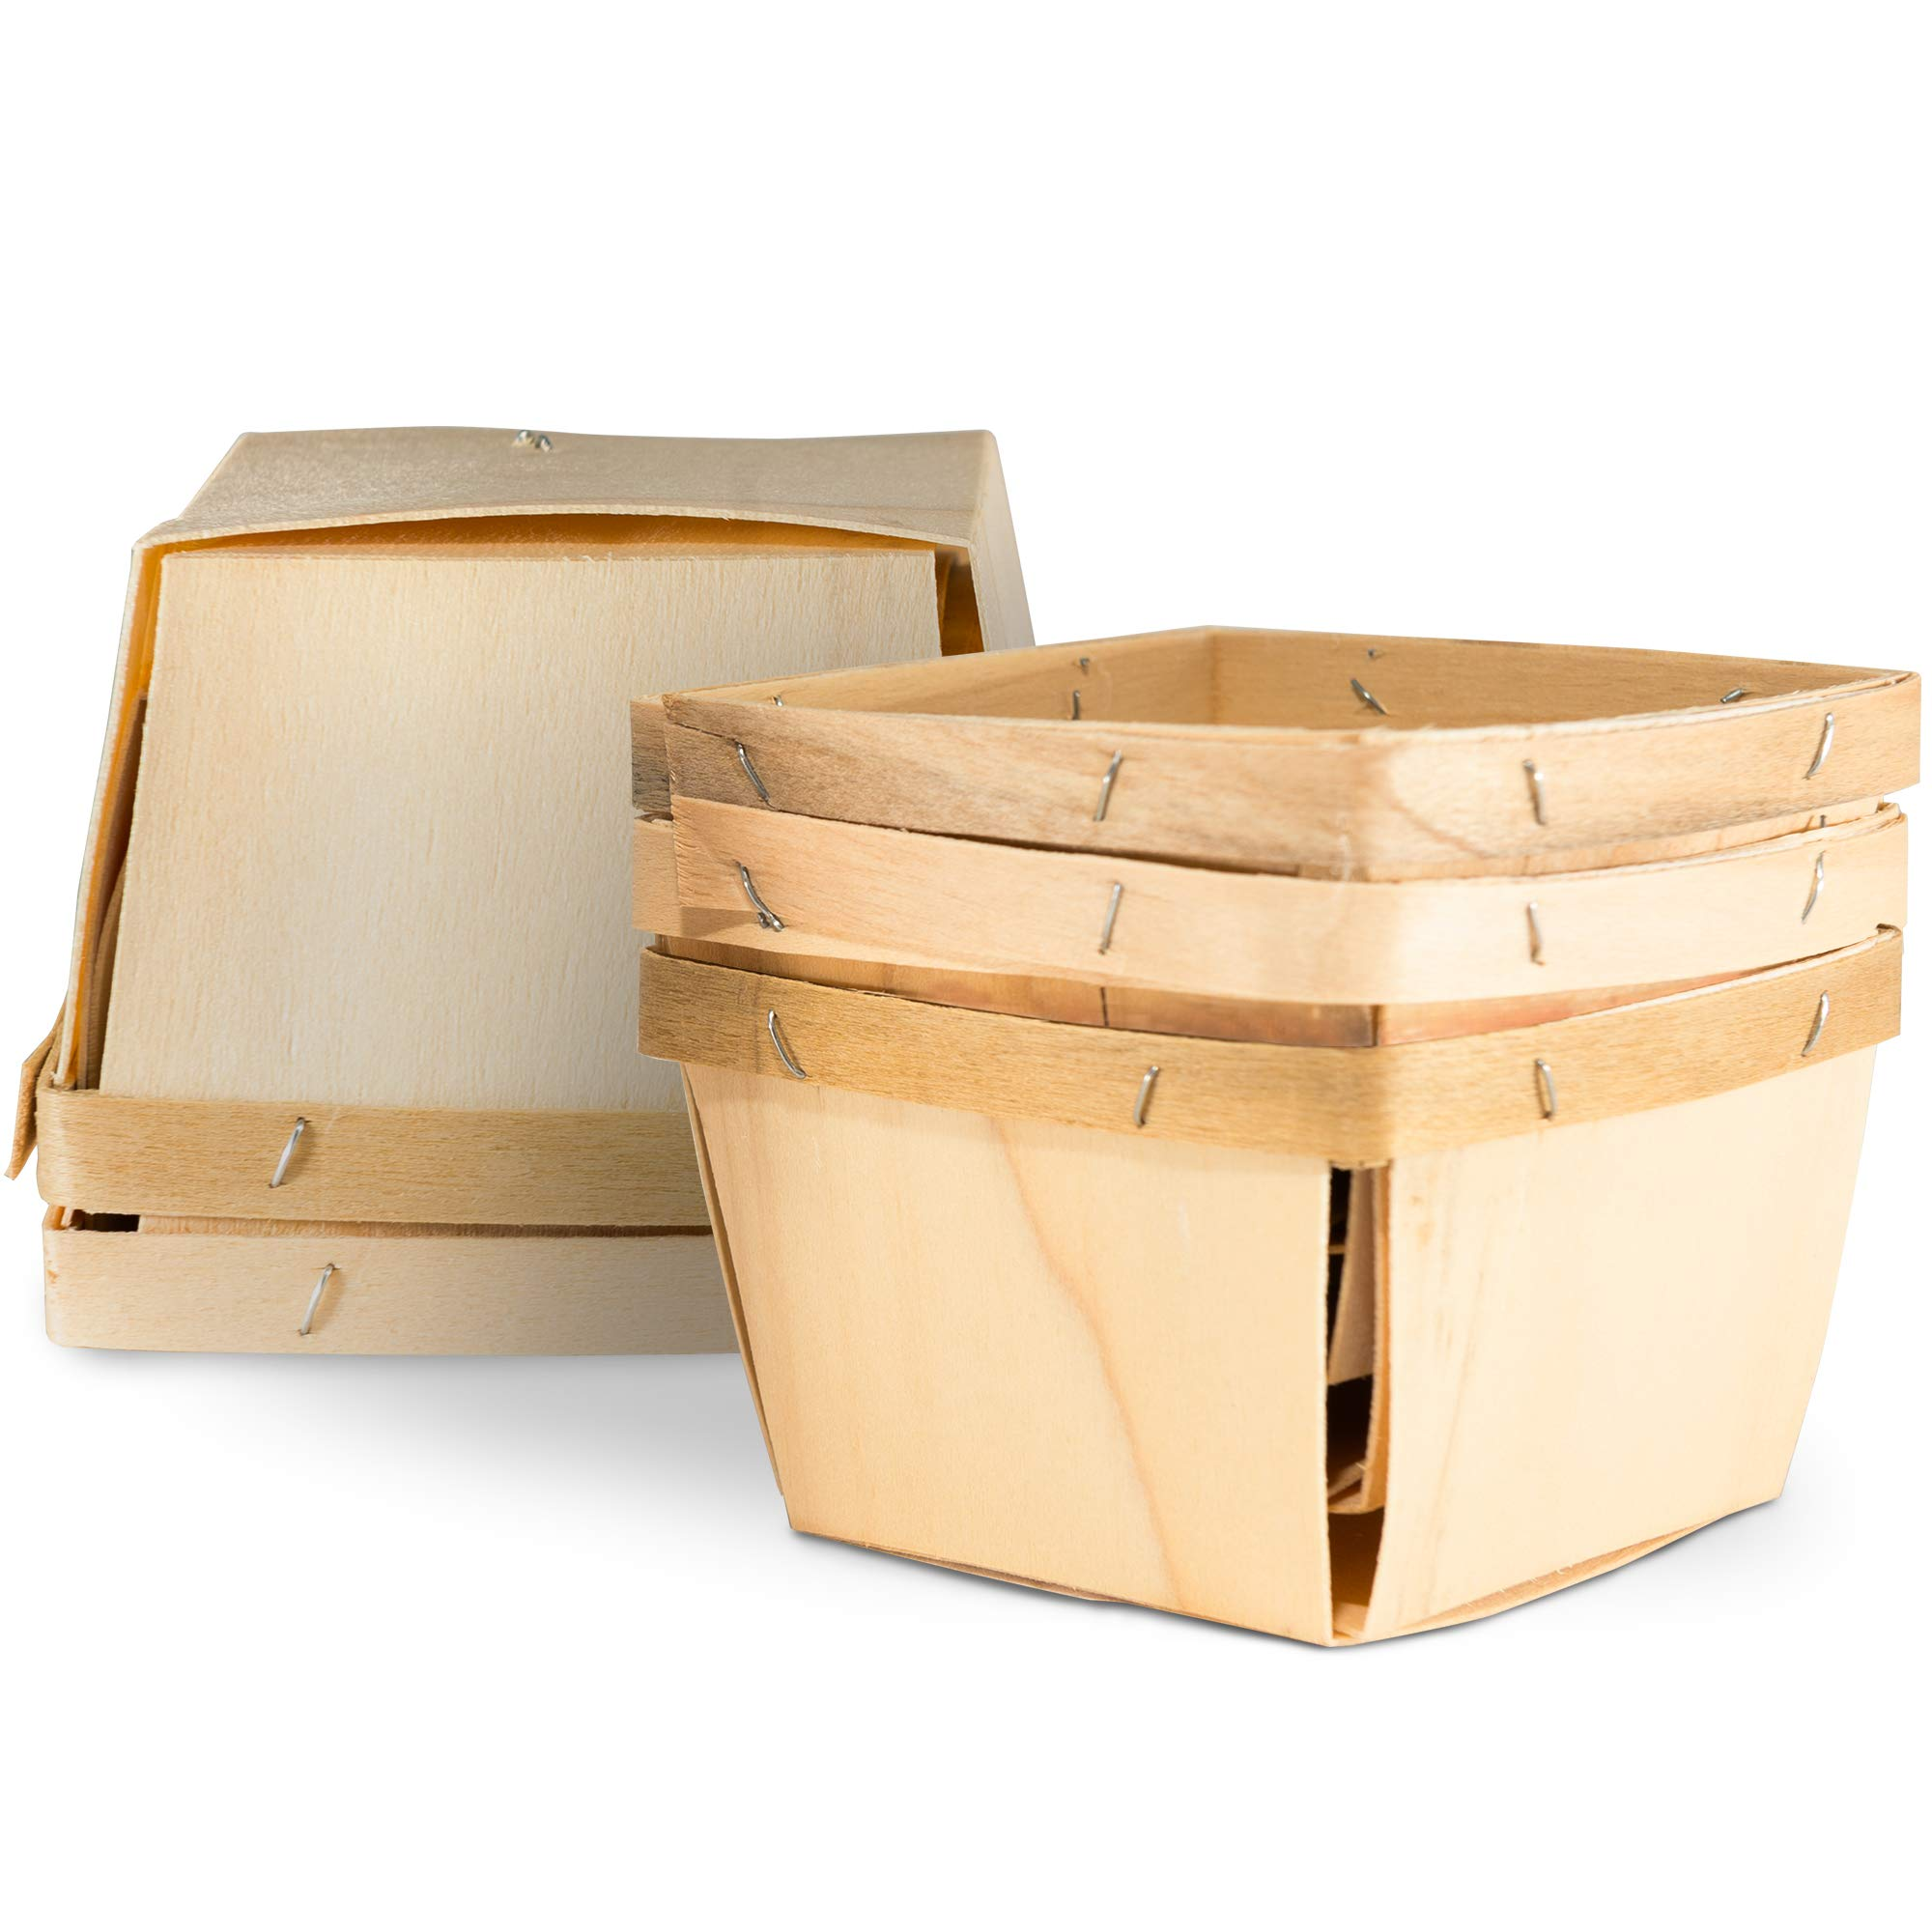 """One Pint Wooden Berry Baskets (5 Pack); for Picking Fruit or Arts, Crafts and Decor; 4"""" Square Vented Wood Boxes"""